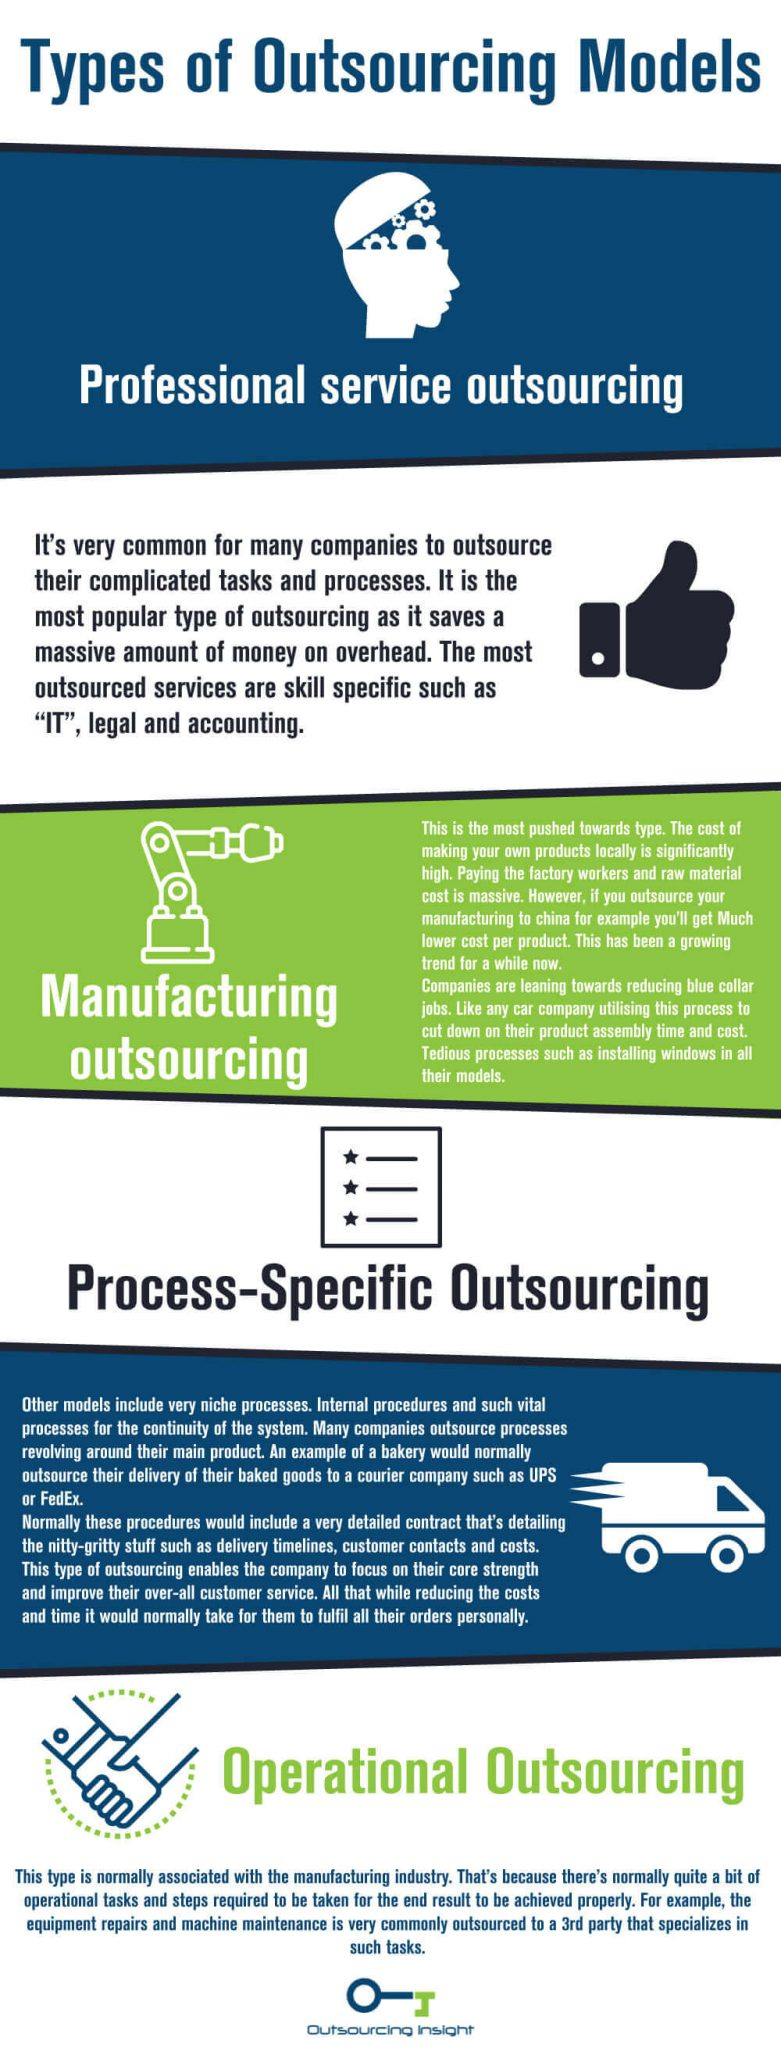 forms of outsourced models